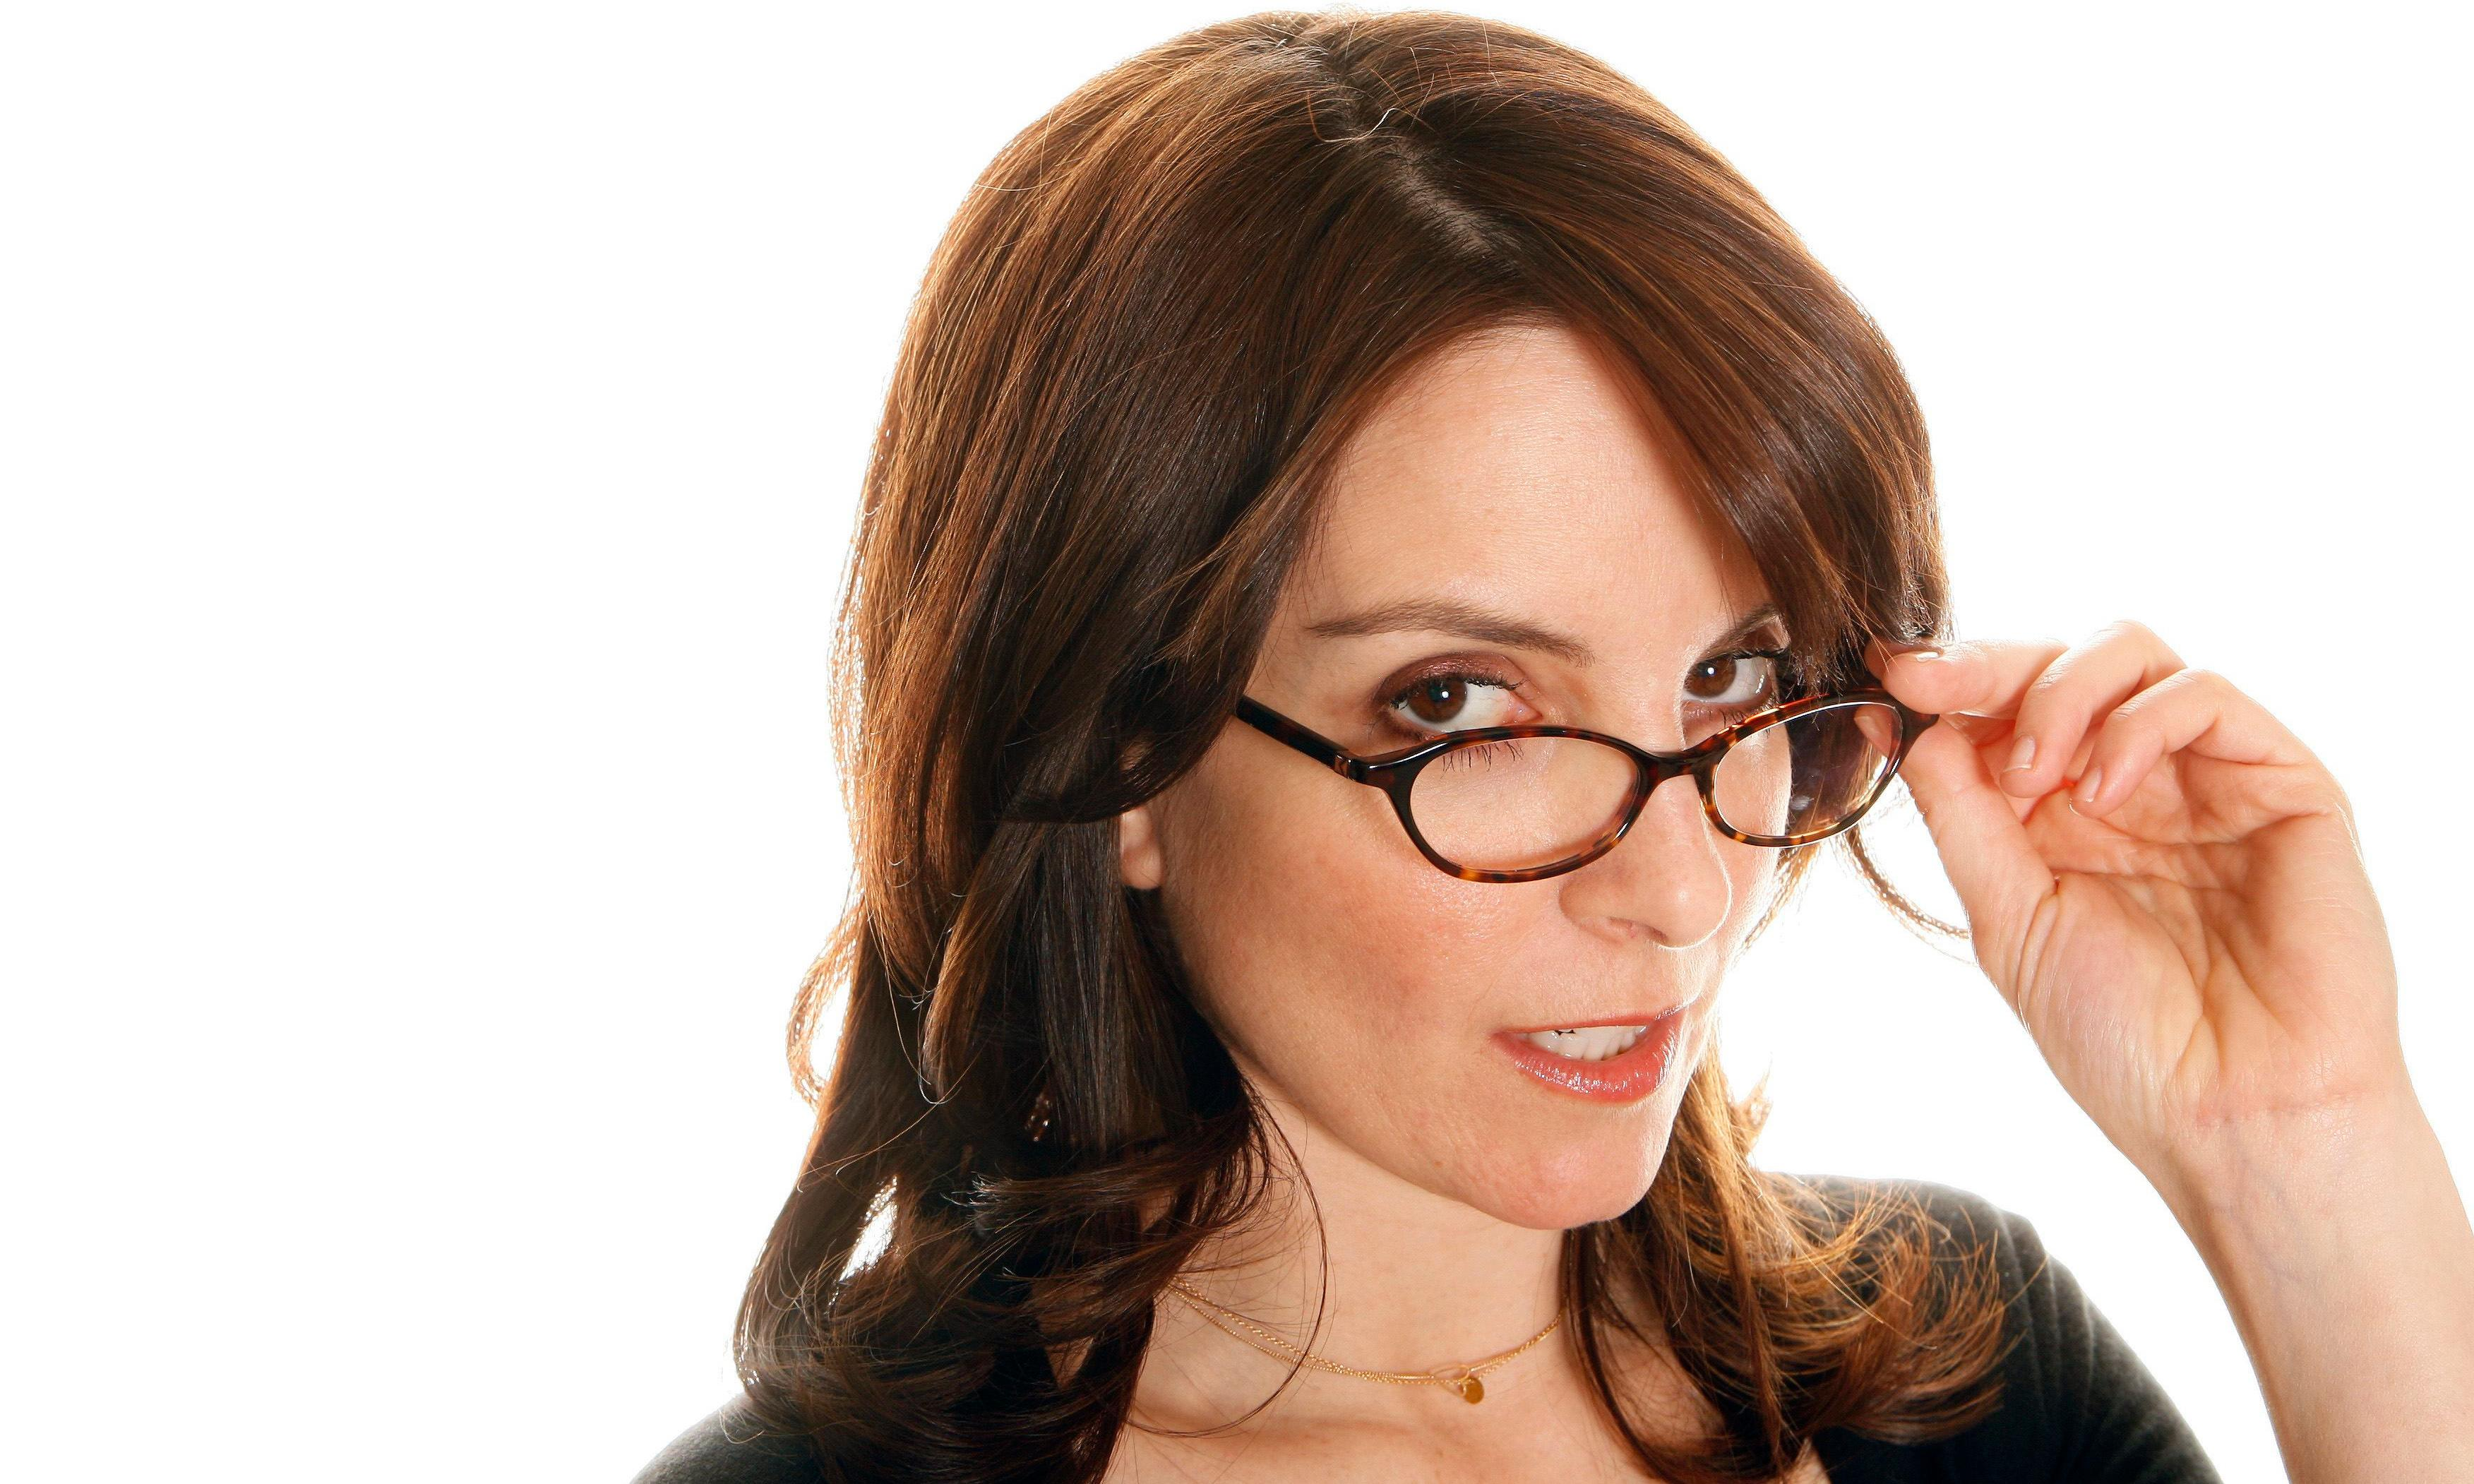 All hail Tina Fey: the funniest comic of the 21st century